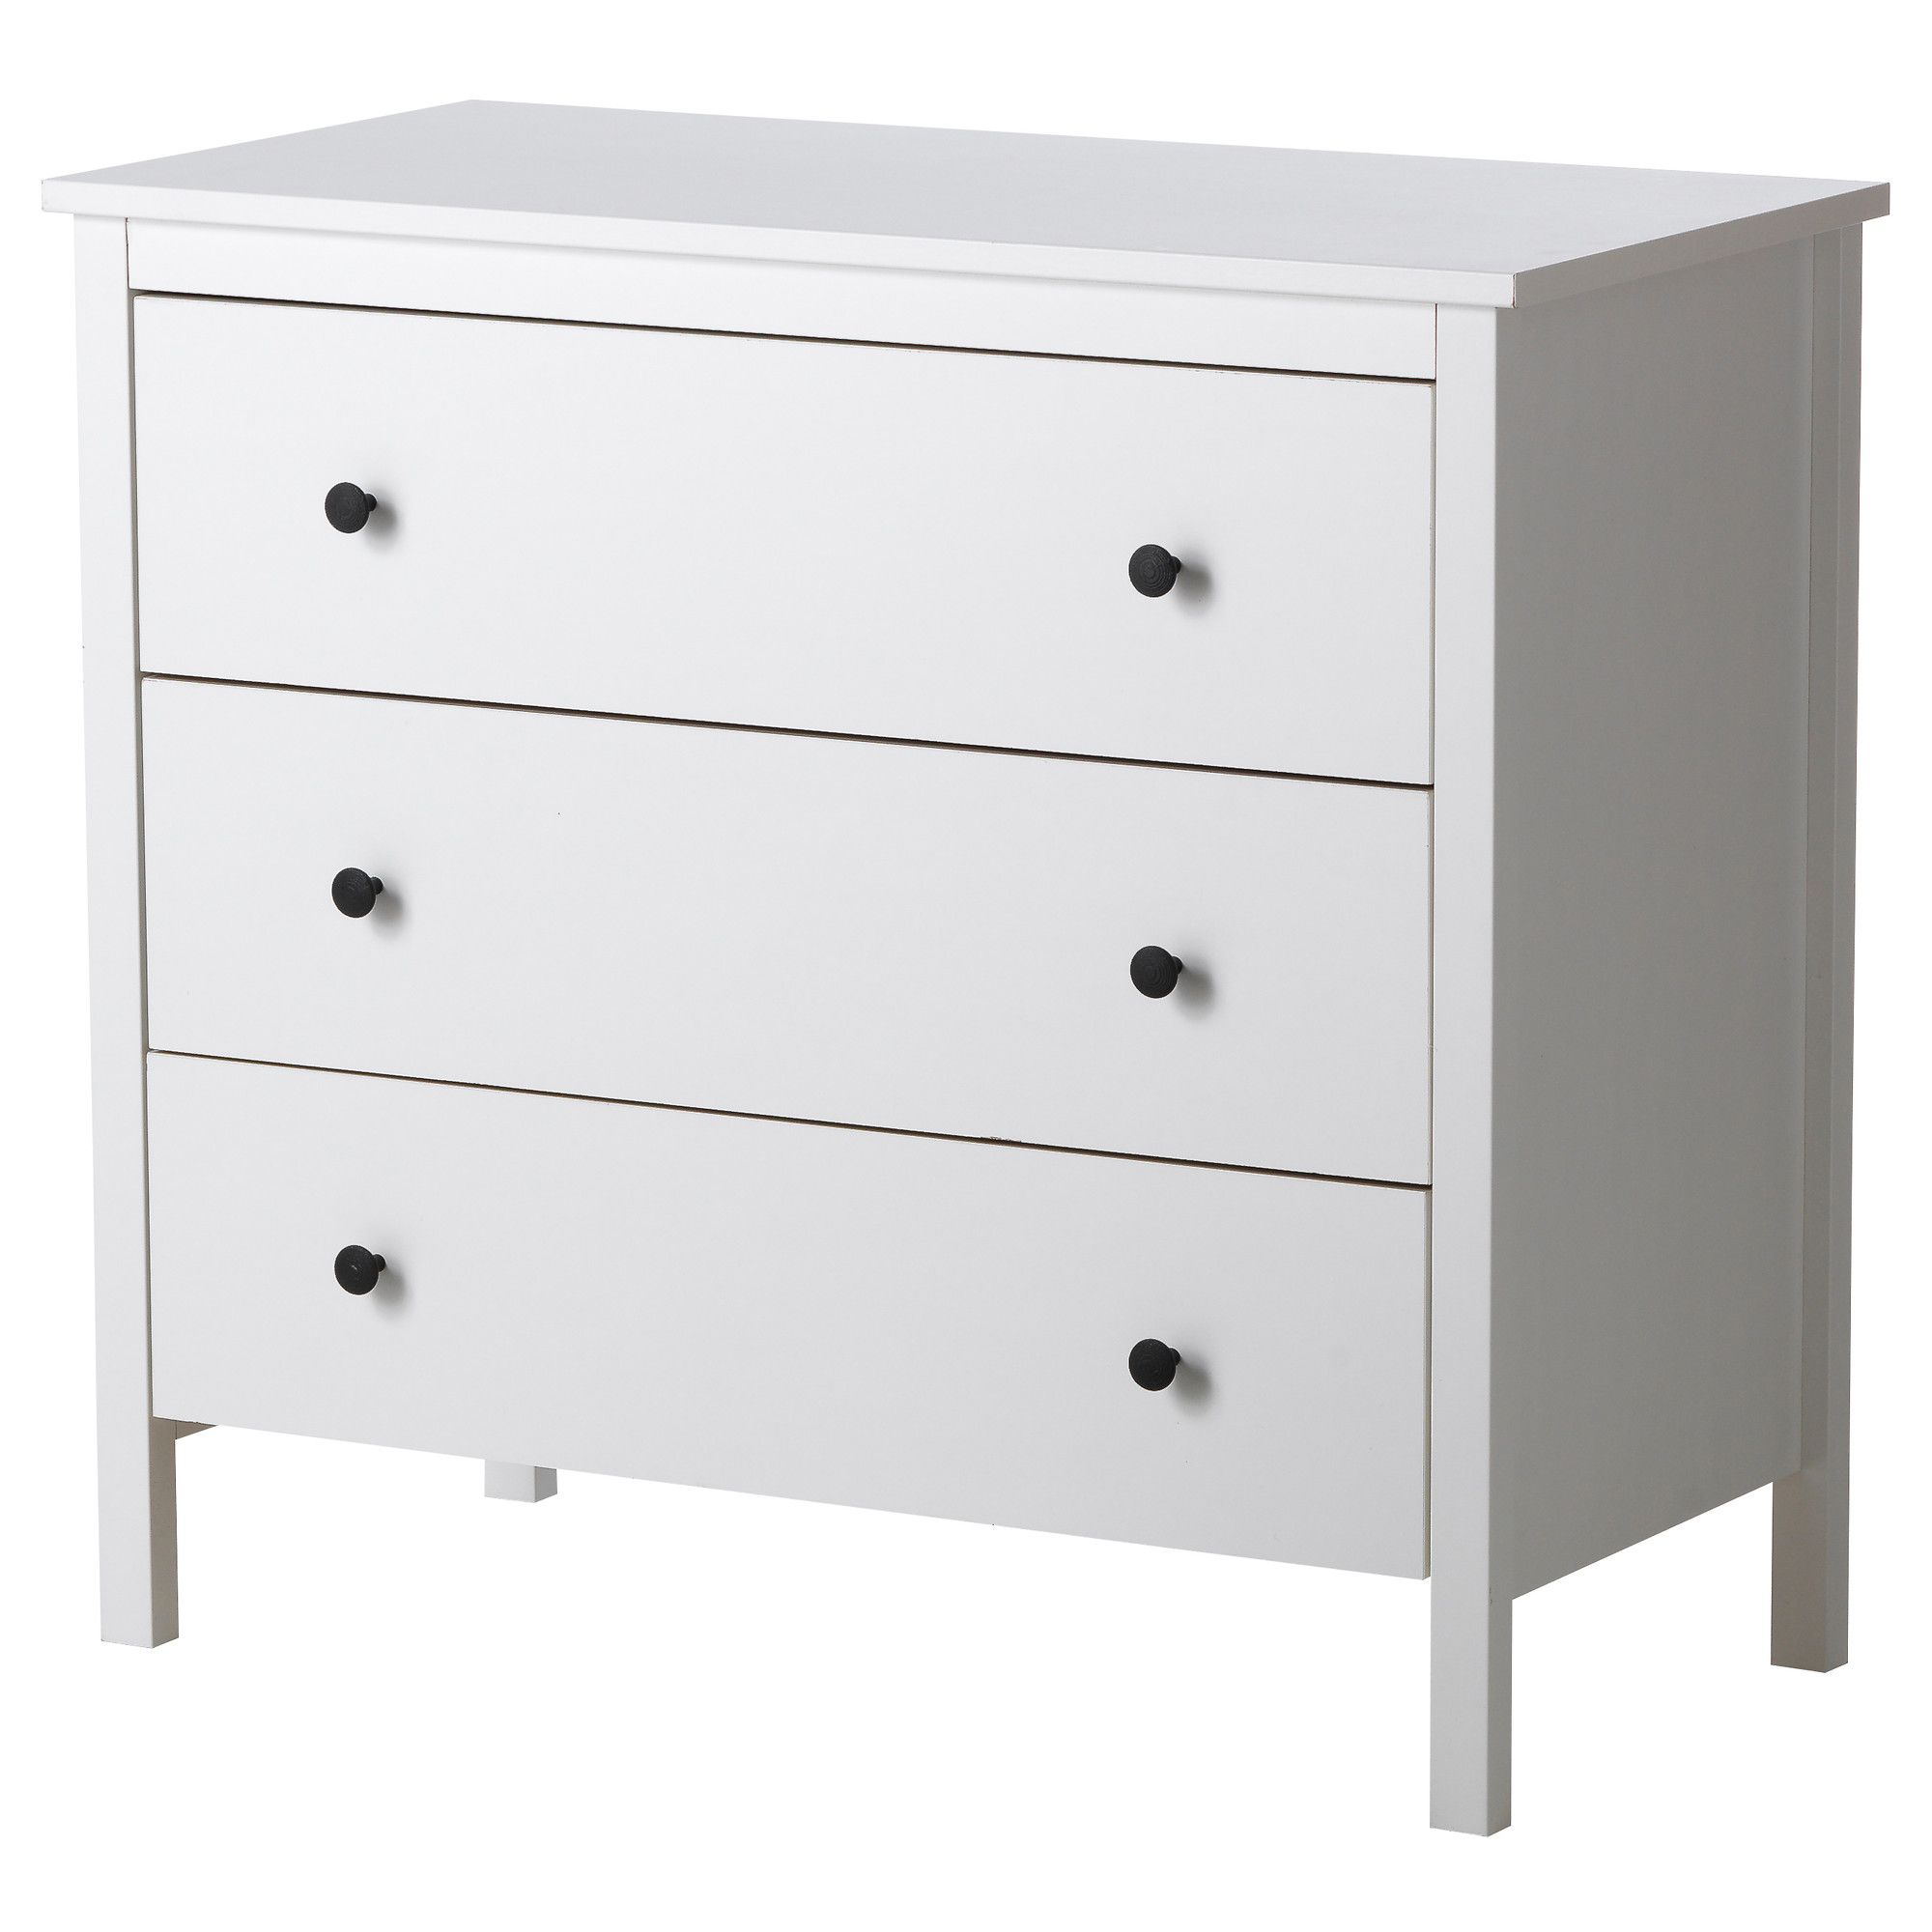 This Dresser Will Fit Perfectly In Our Small E I Plan To Make It More Personal With Diffe Drawer Pulls Koppang 3 Chest Ikea